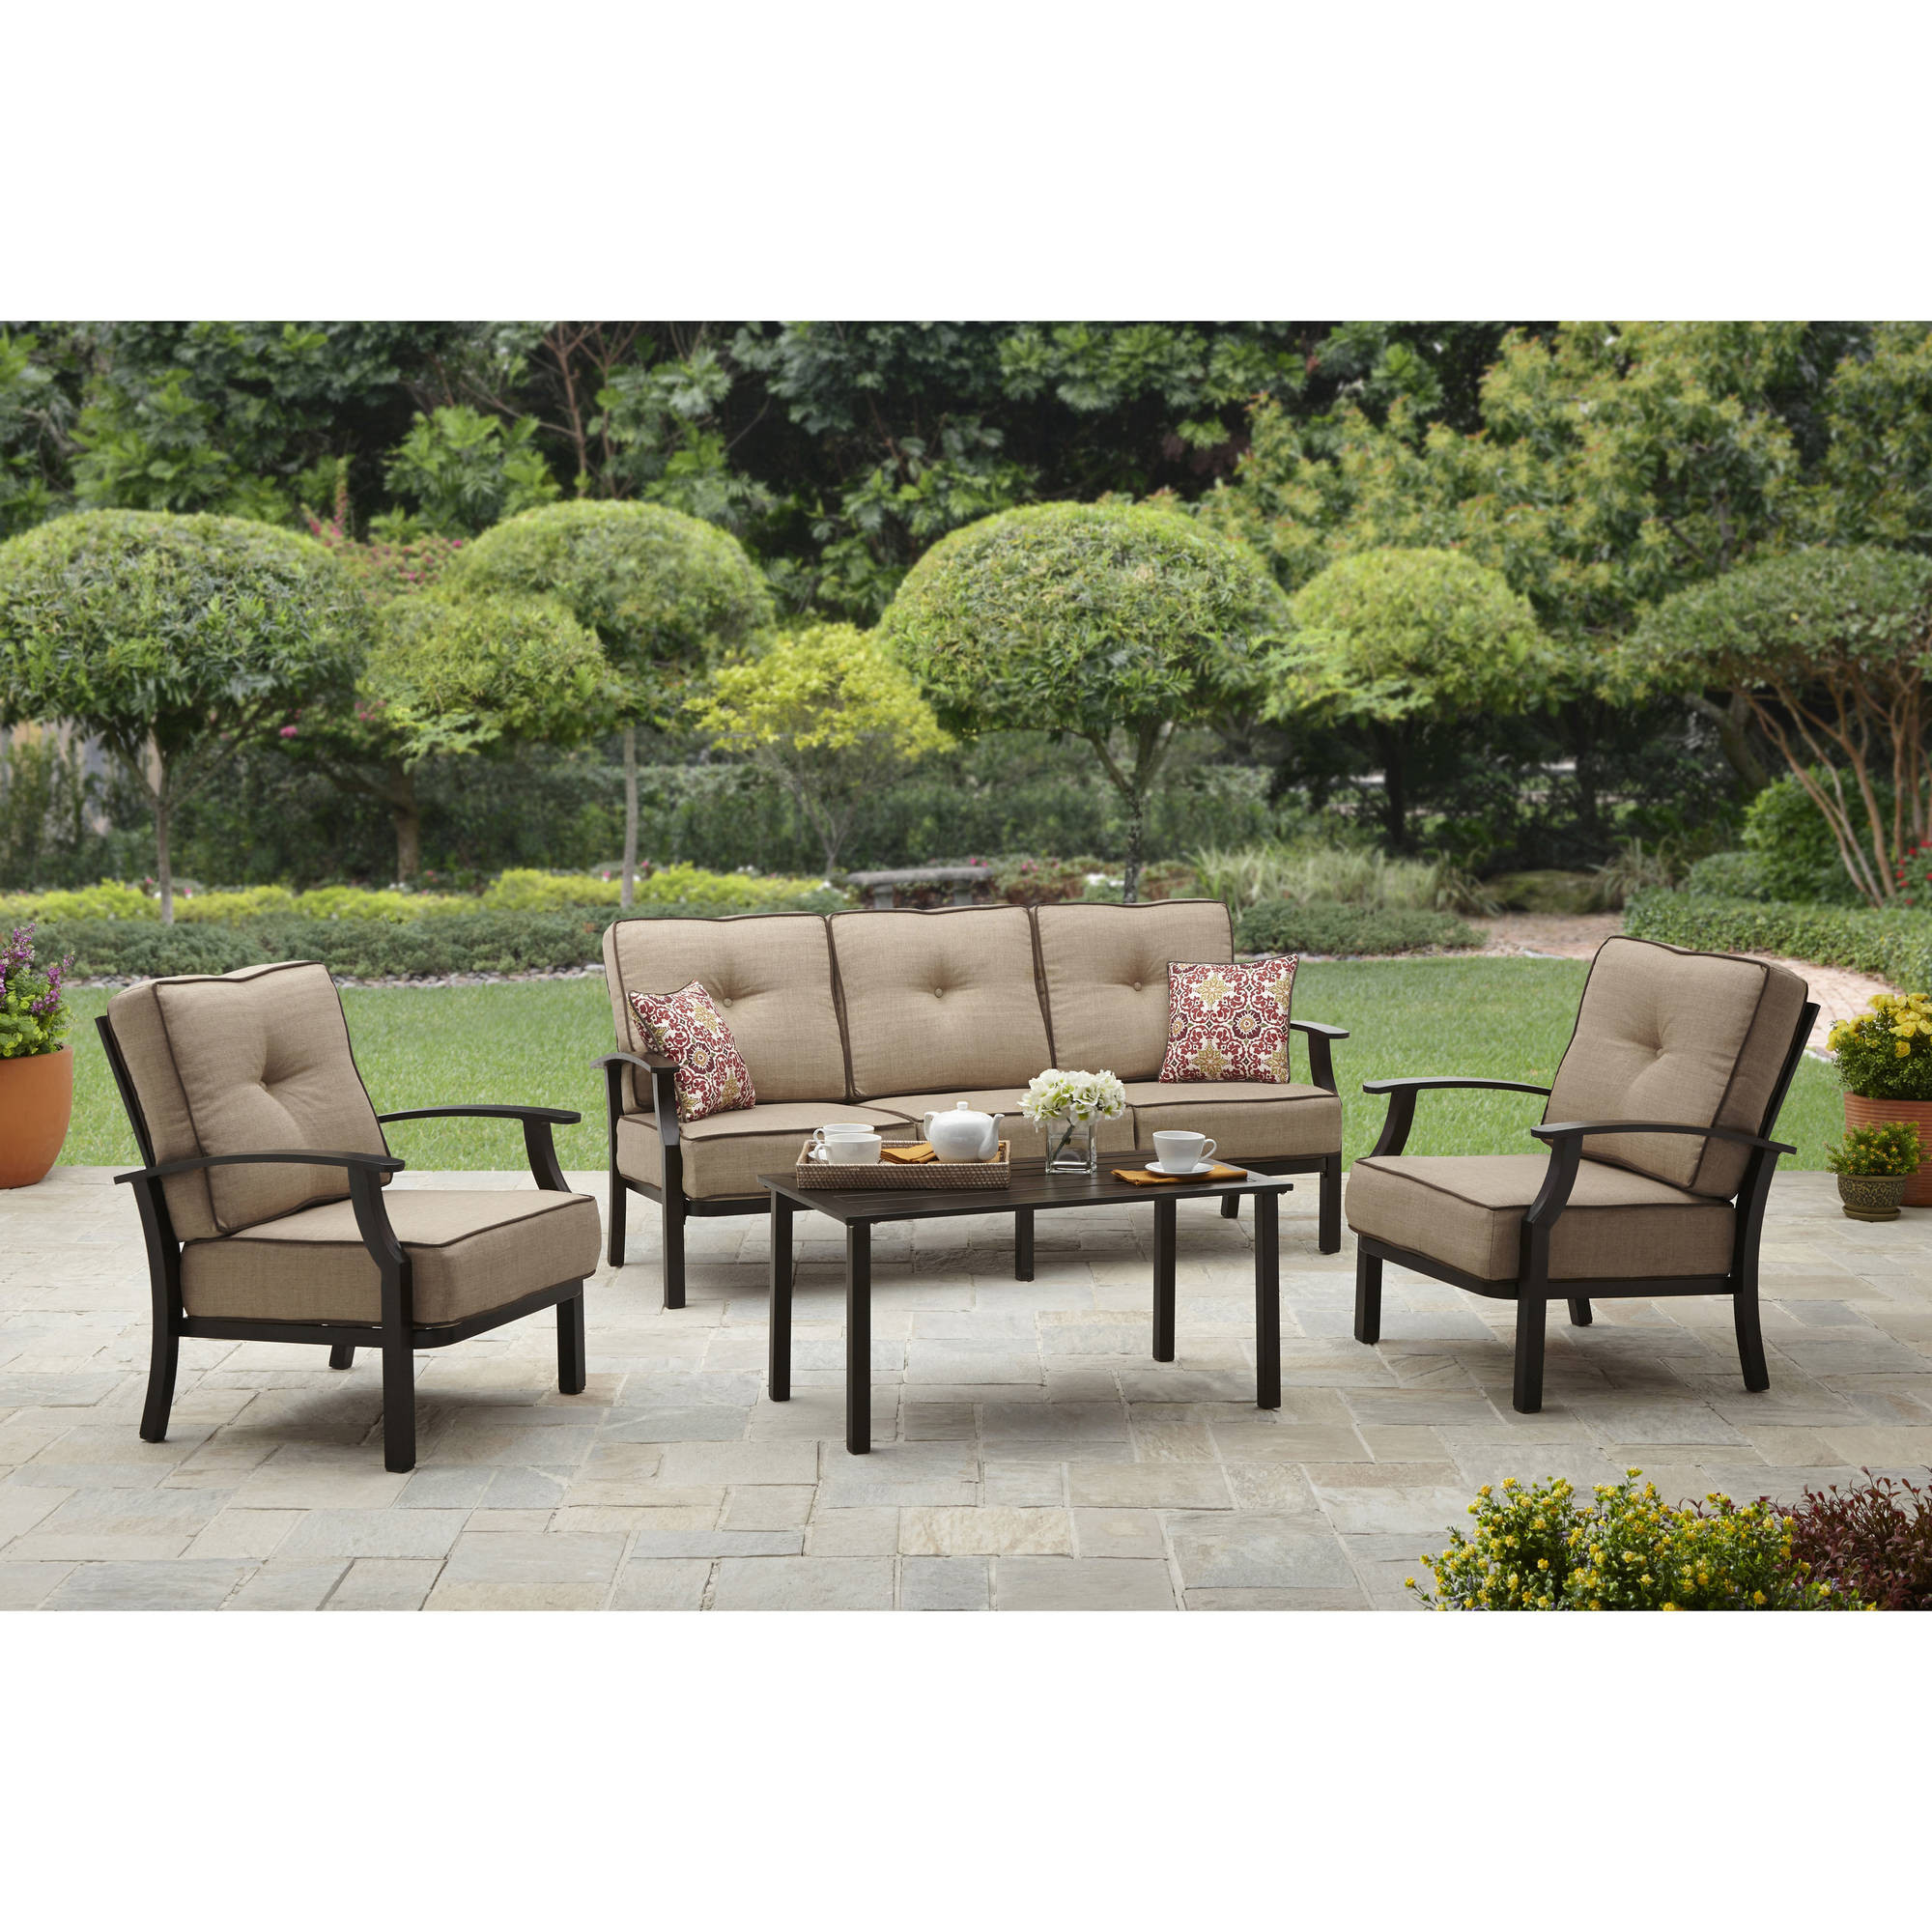 Best ideas about Better Homes And Gardens Patio Cushions . Save or Pin Better Homes and Gardens Clayton Court 5 Piece Patio Now.